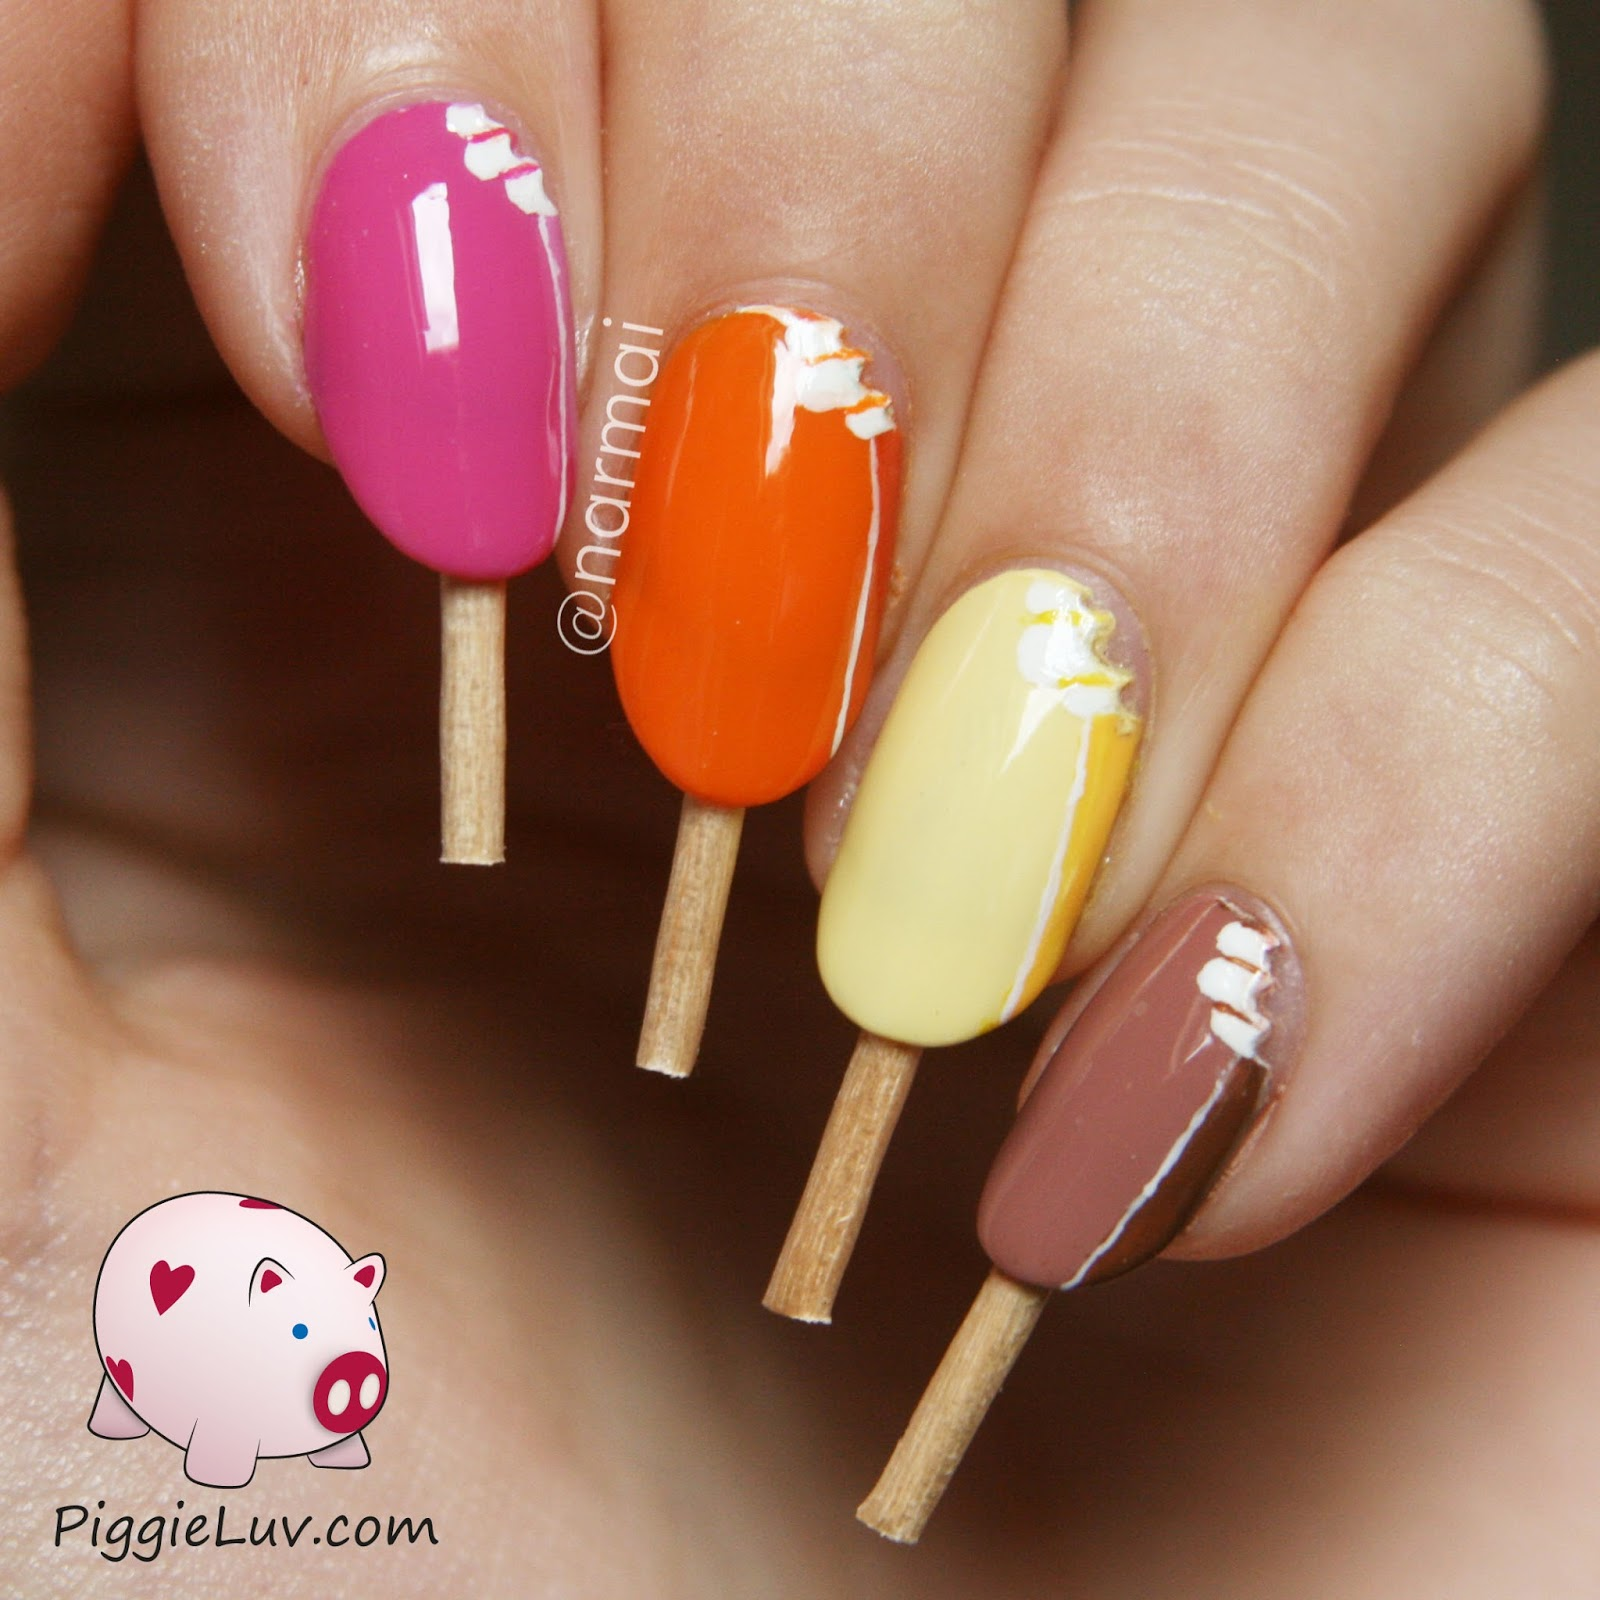 Piggieluv august 2014 magnum ice cream nail art with video tutorial solutioingenieria